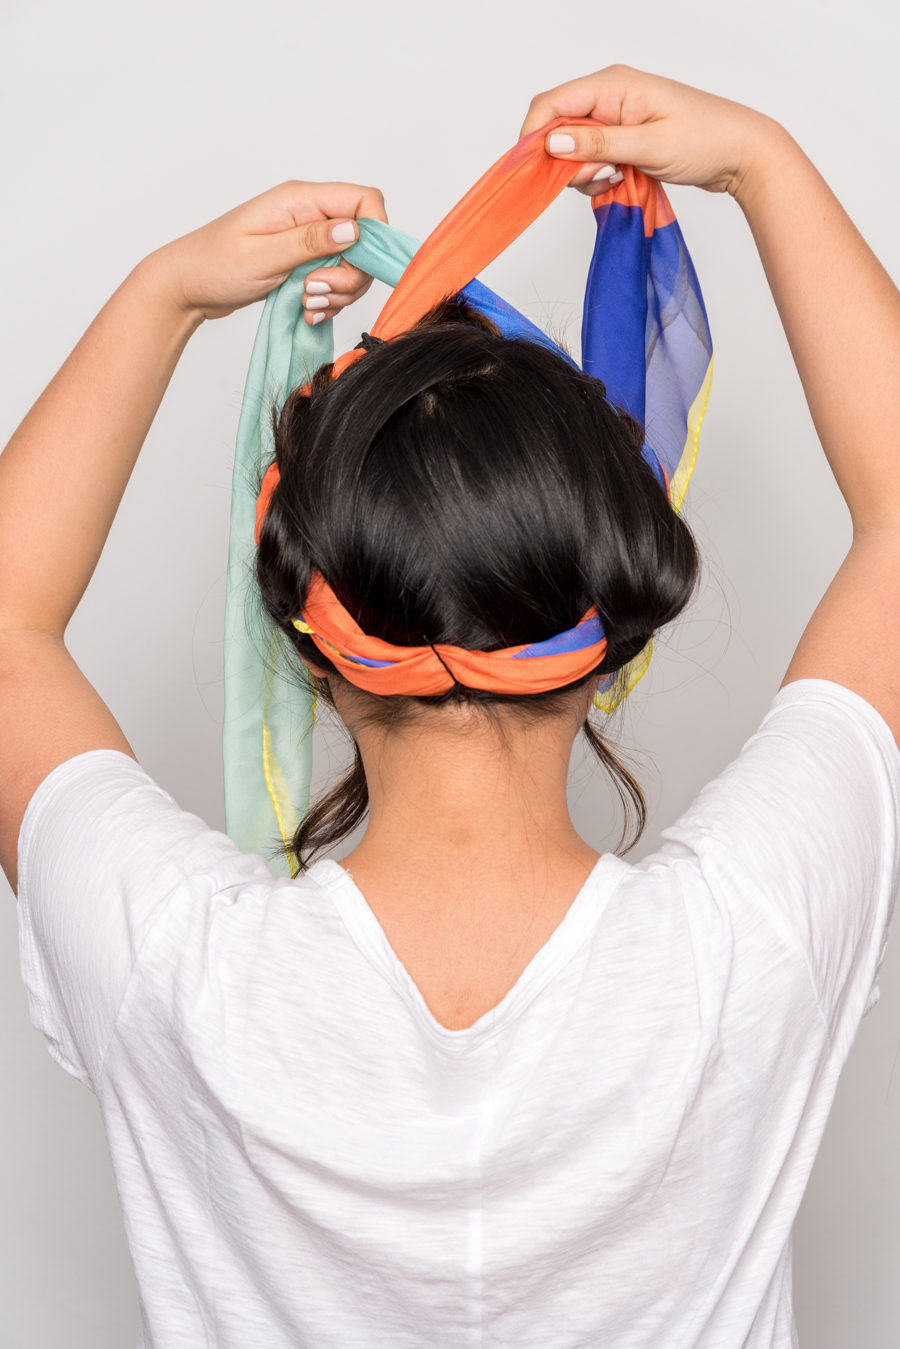 How To Use A Scarf For Stylish Summer Hair スカーフを使った簡単ヘアアレンジ 10